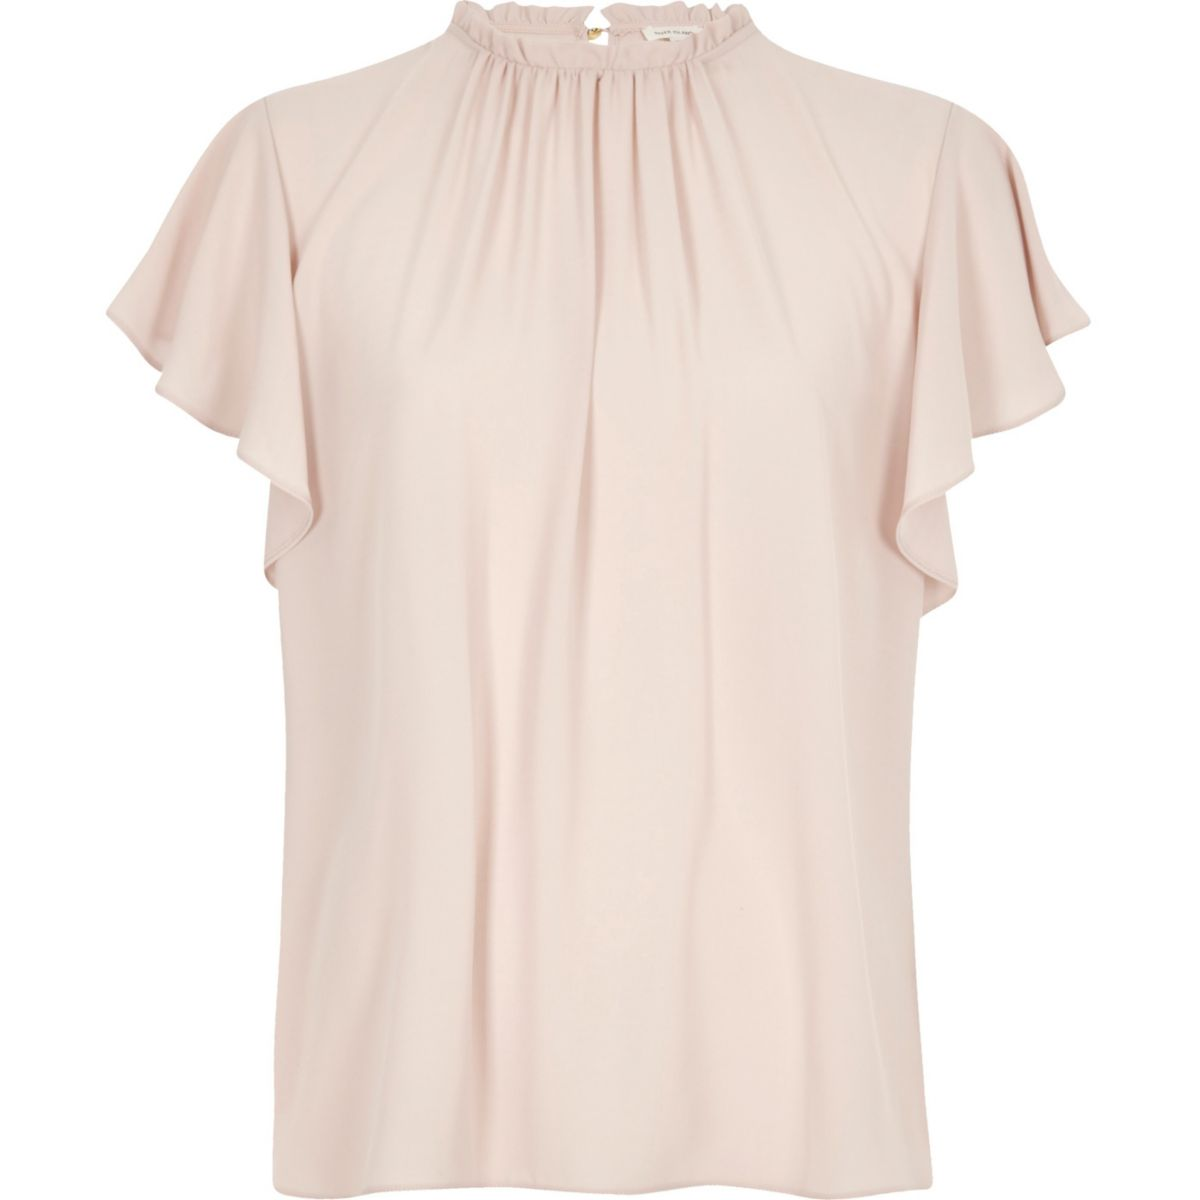 Light pink high neck frill sleeve top